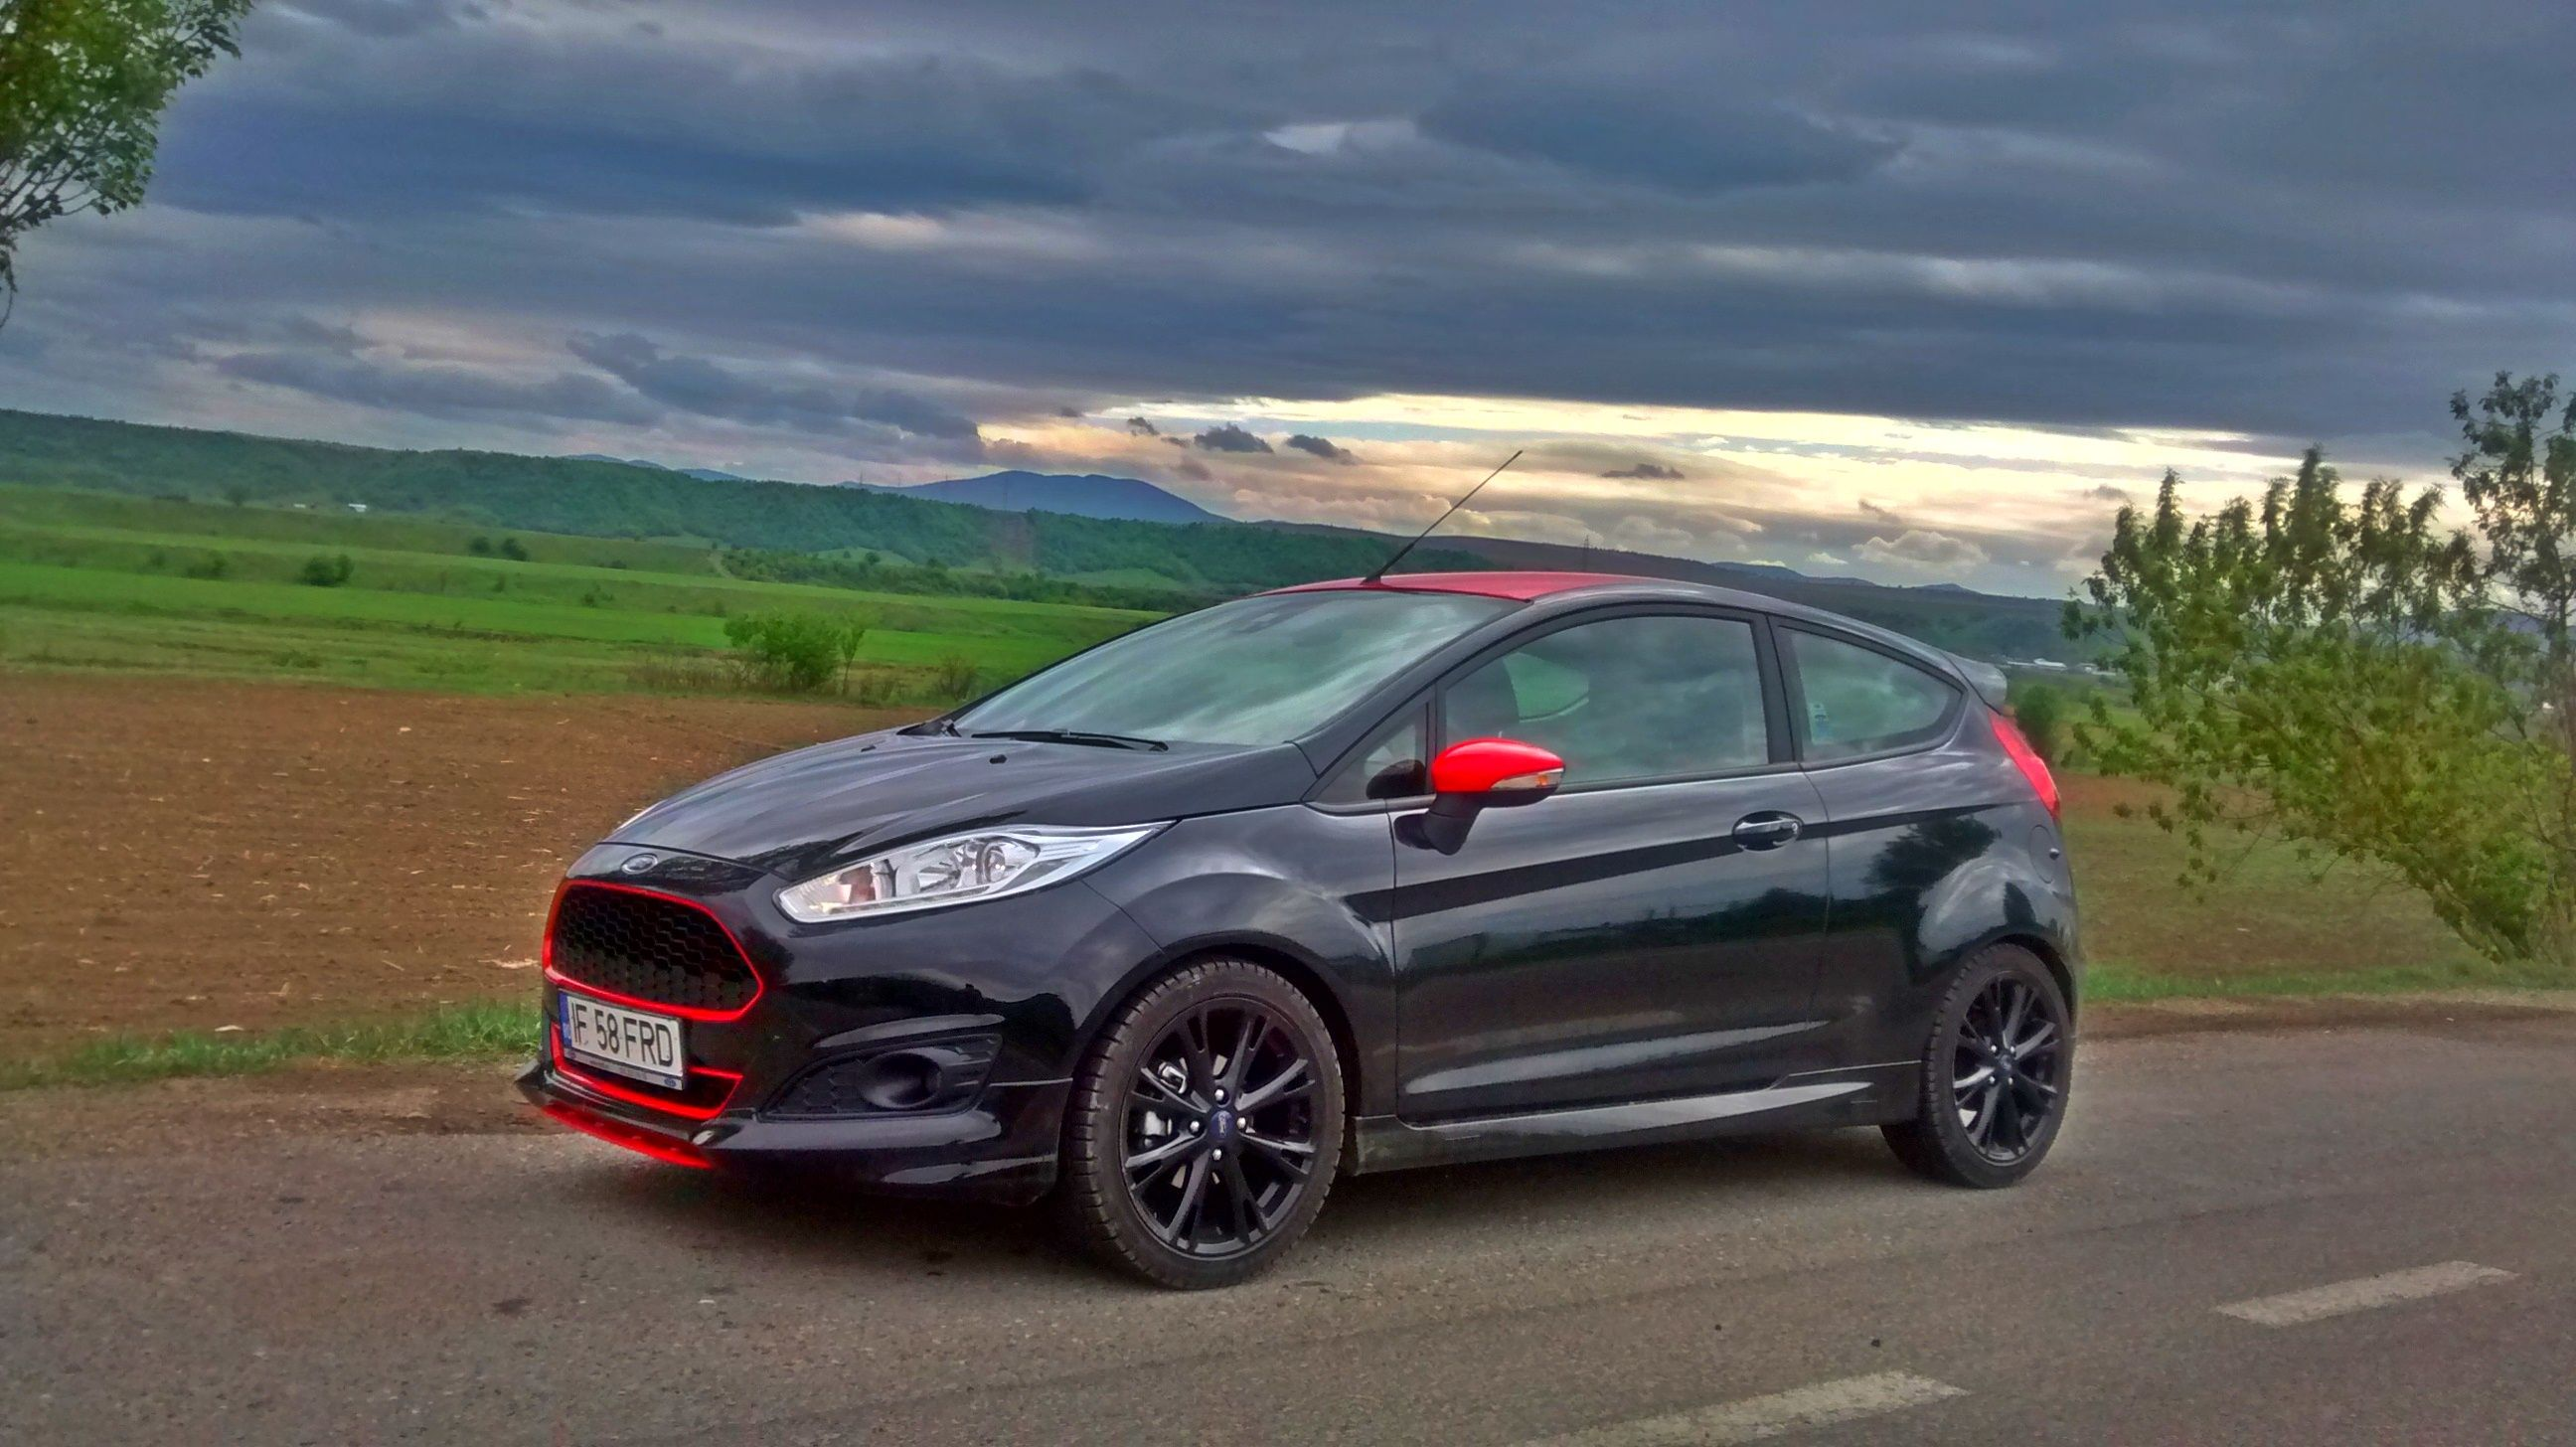 Molten orange usdm 5 door ford fiesta st fordfiestast moltenorange fiestast ford fiesta st pinterest ford and cars